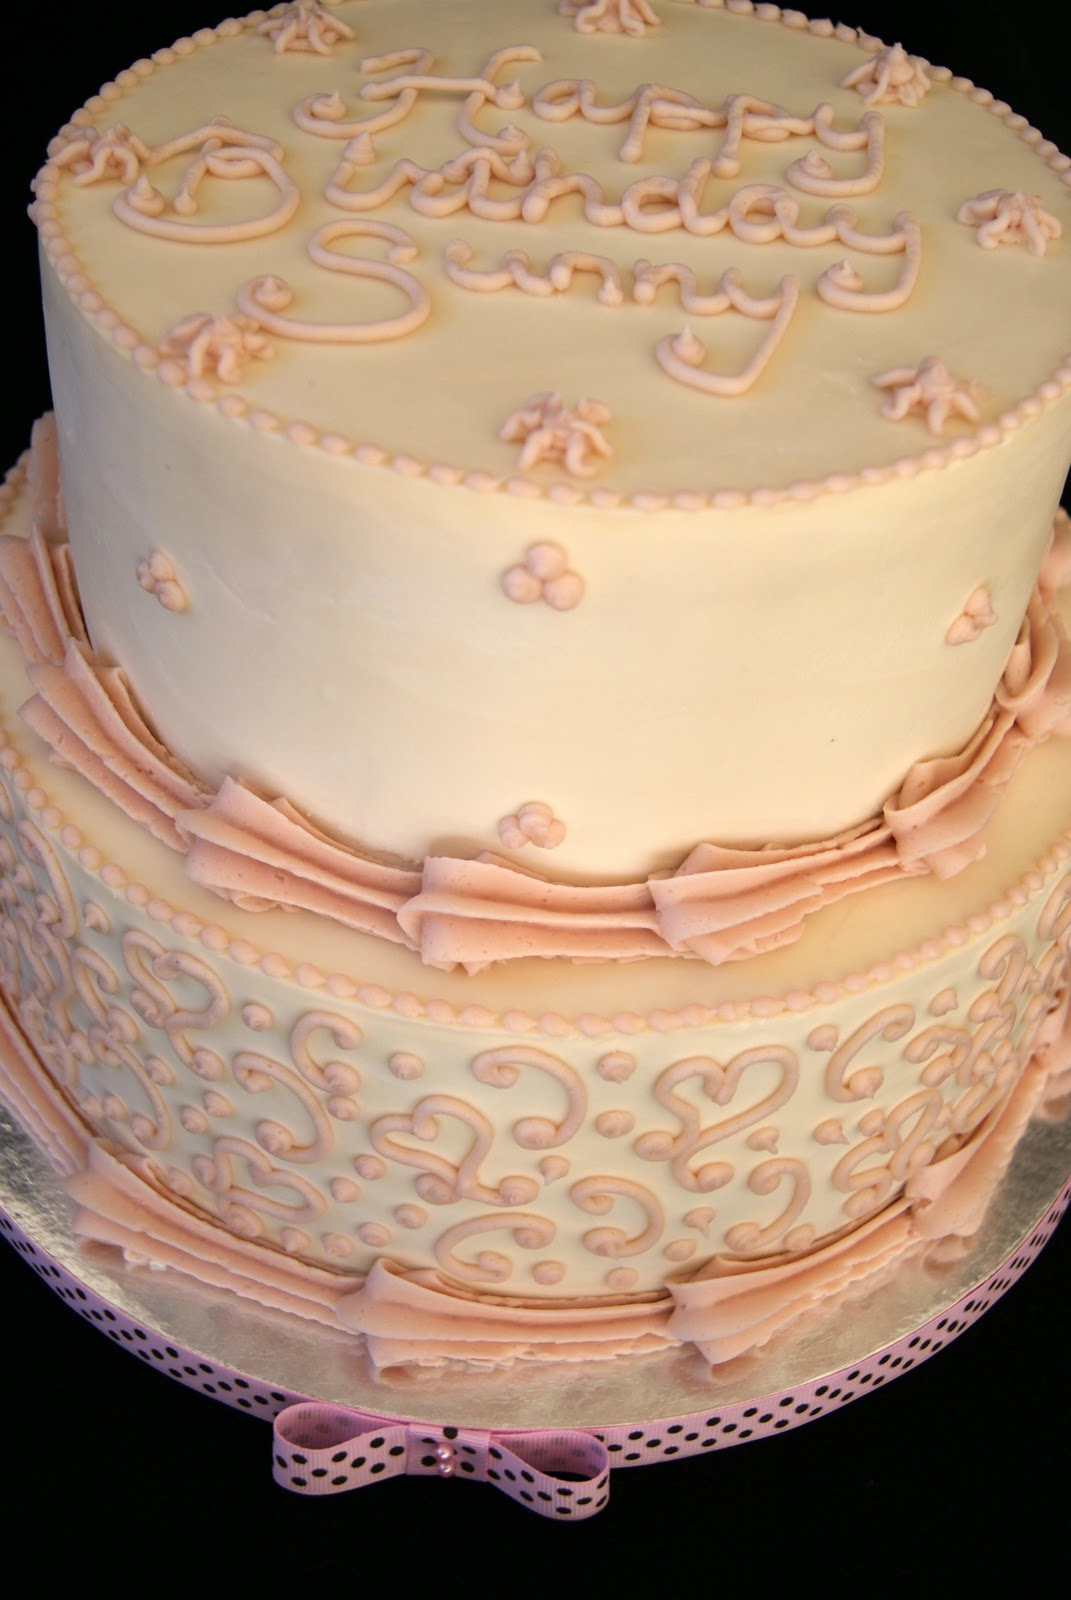 Birthday Cake Images With Name Sunny : Hearts cake for Sunny s 4th birthday Be Nourished Now ...